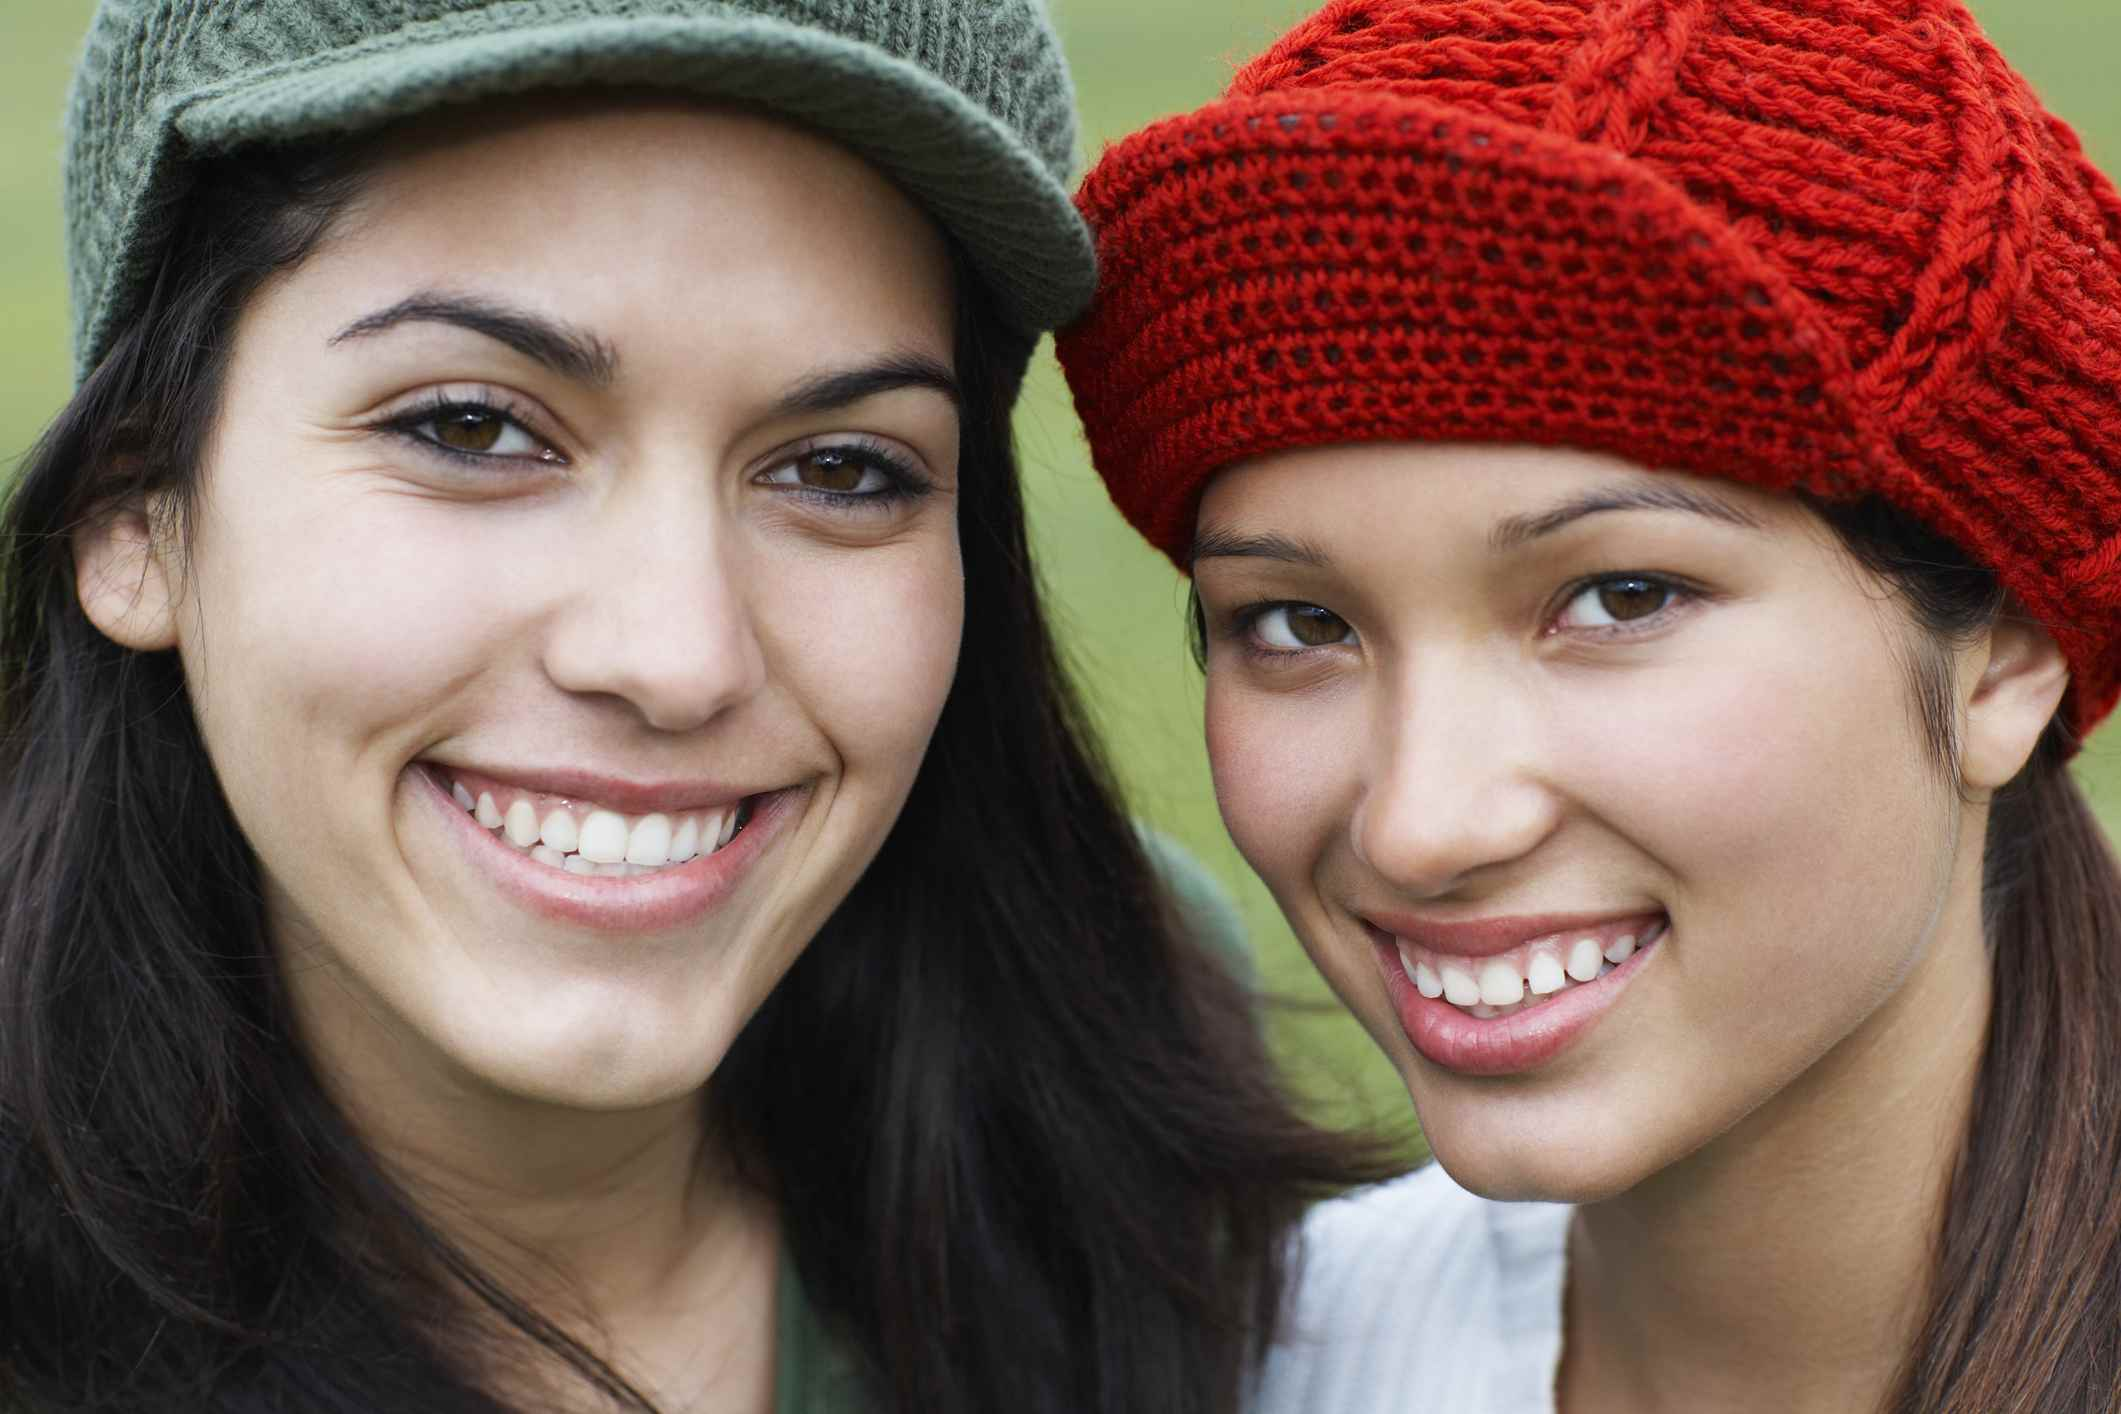 Two women in knit caps smiling together